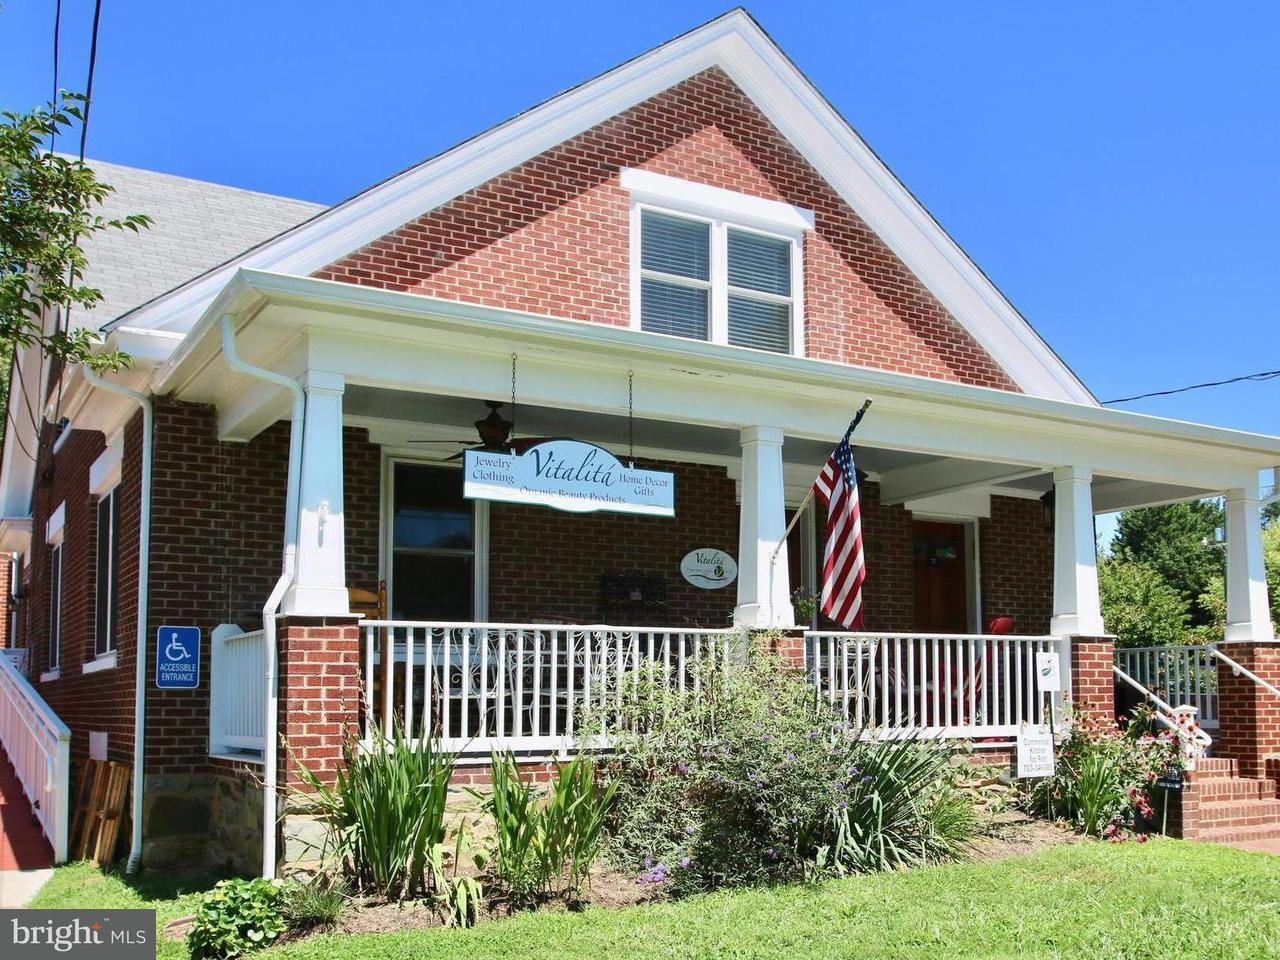 Commercial for Sale at 221e. Main St Purcellville, Virginia 20132 United States